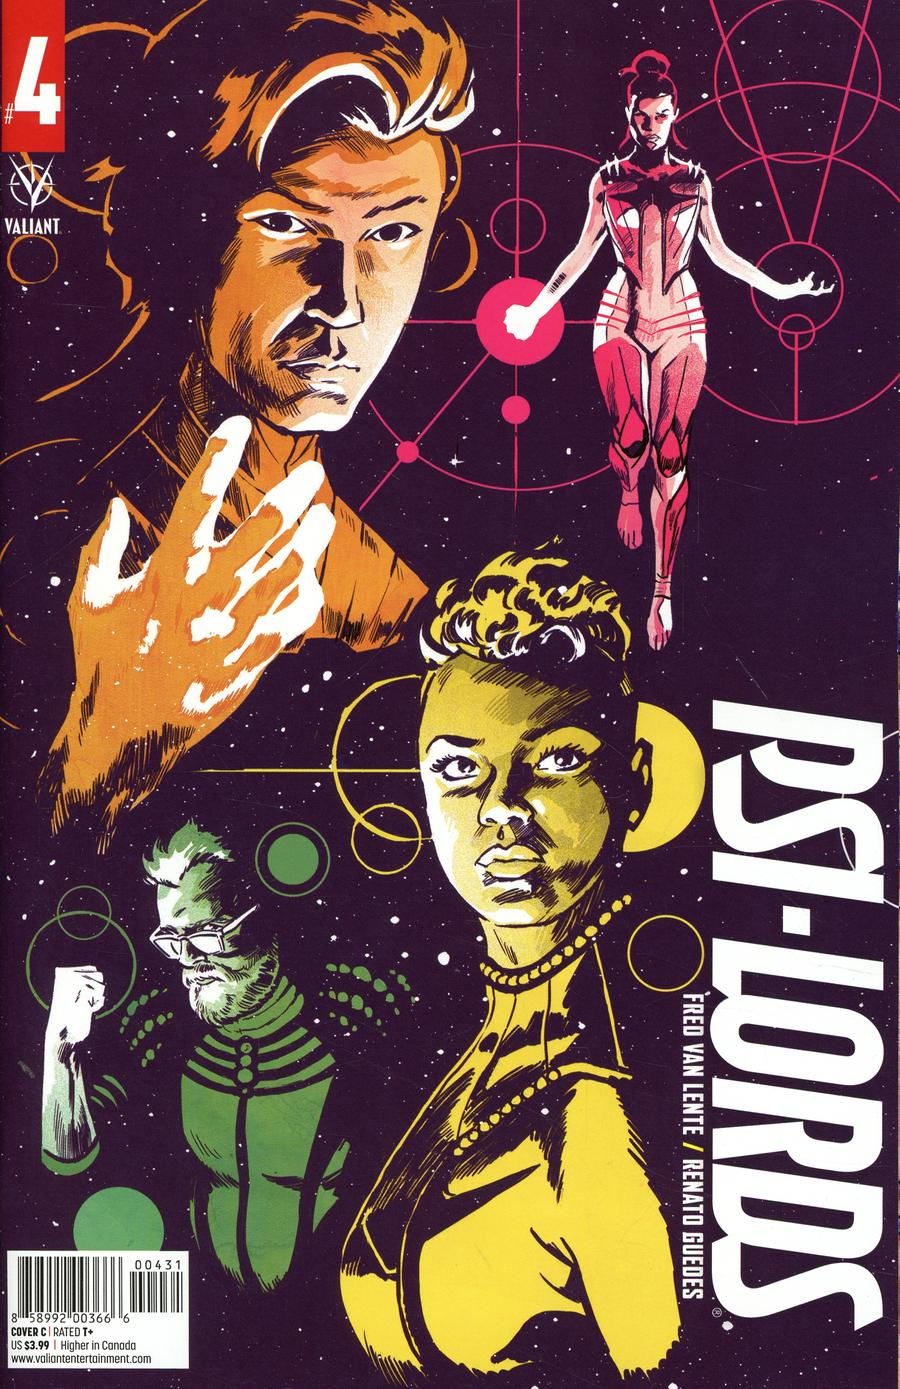 Psi-Lords Vol 2 #4 Cover C Variant Michael Walsh Cover